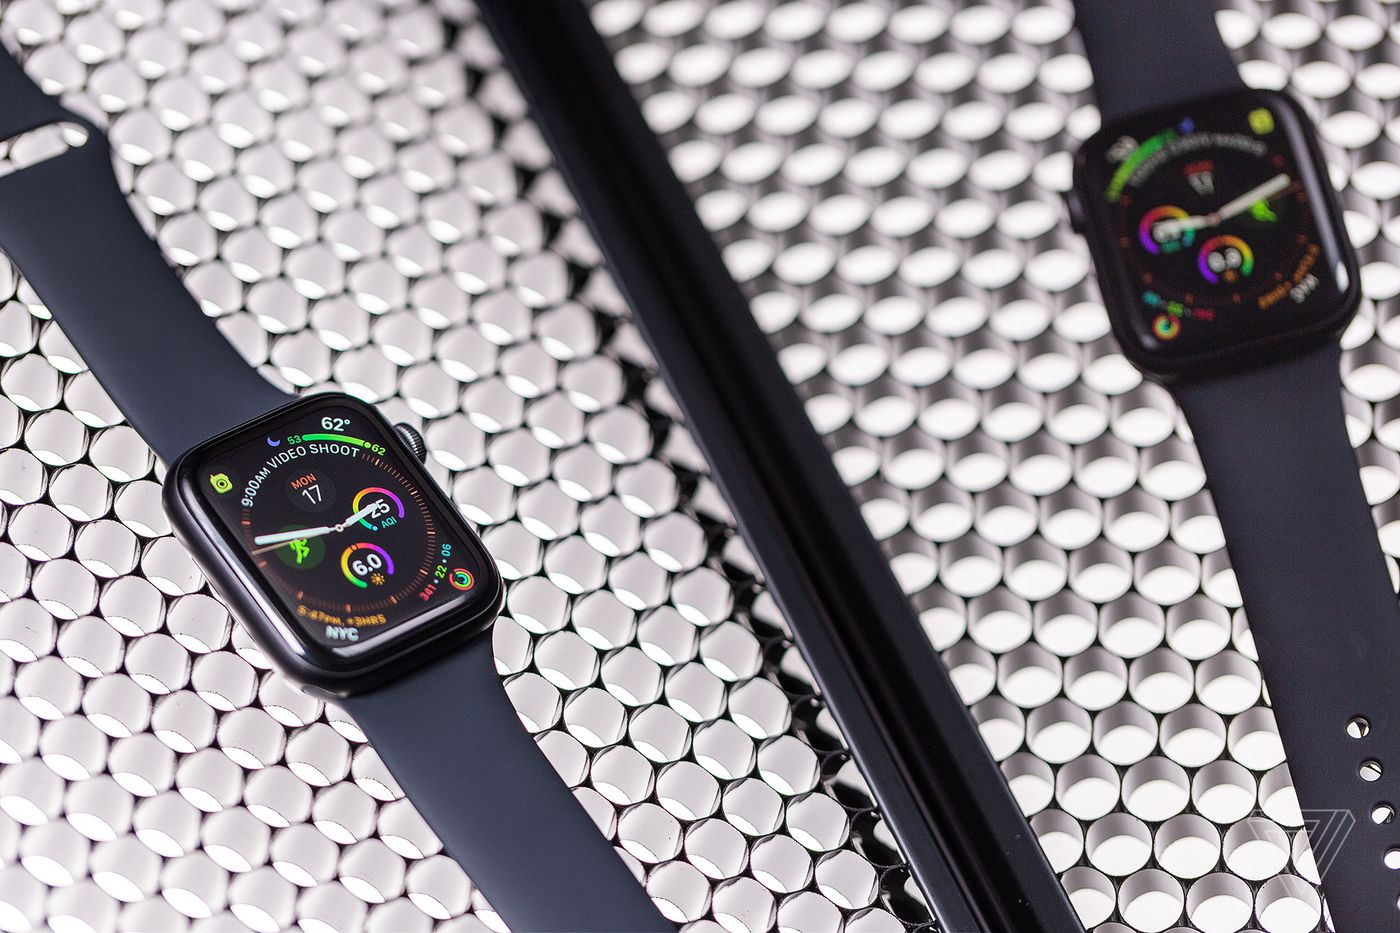 Apple Watch 4 review: the best smartwatch gets better - The